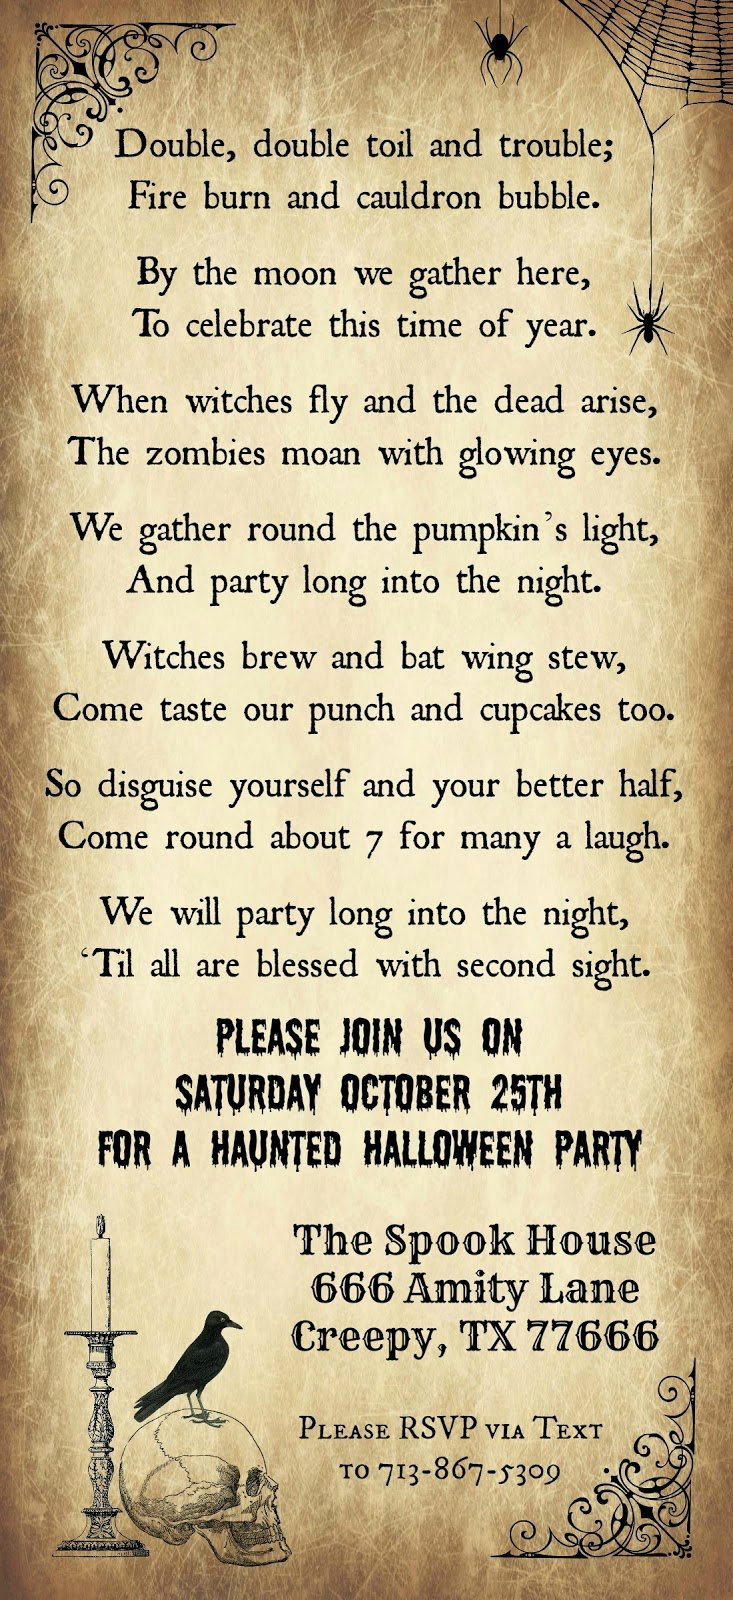 Halloween Birthday Party Invitations Elegant Crafty In Crosby Halloween Party Invitation 2014